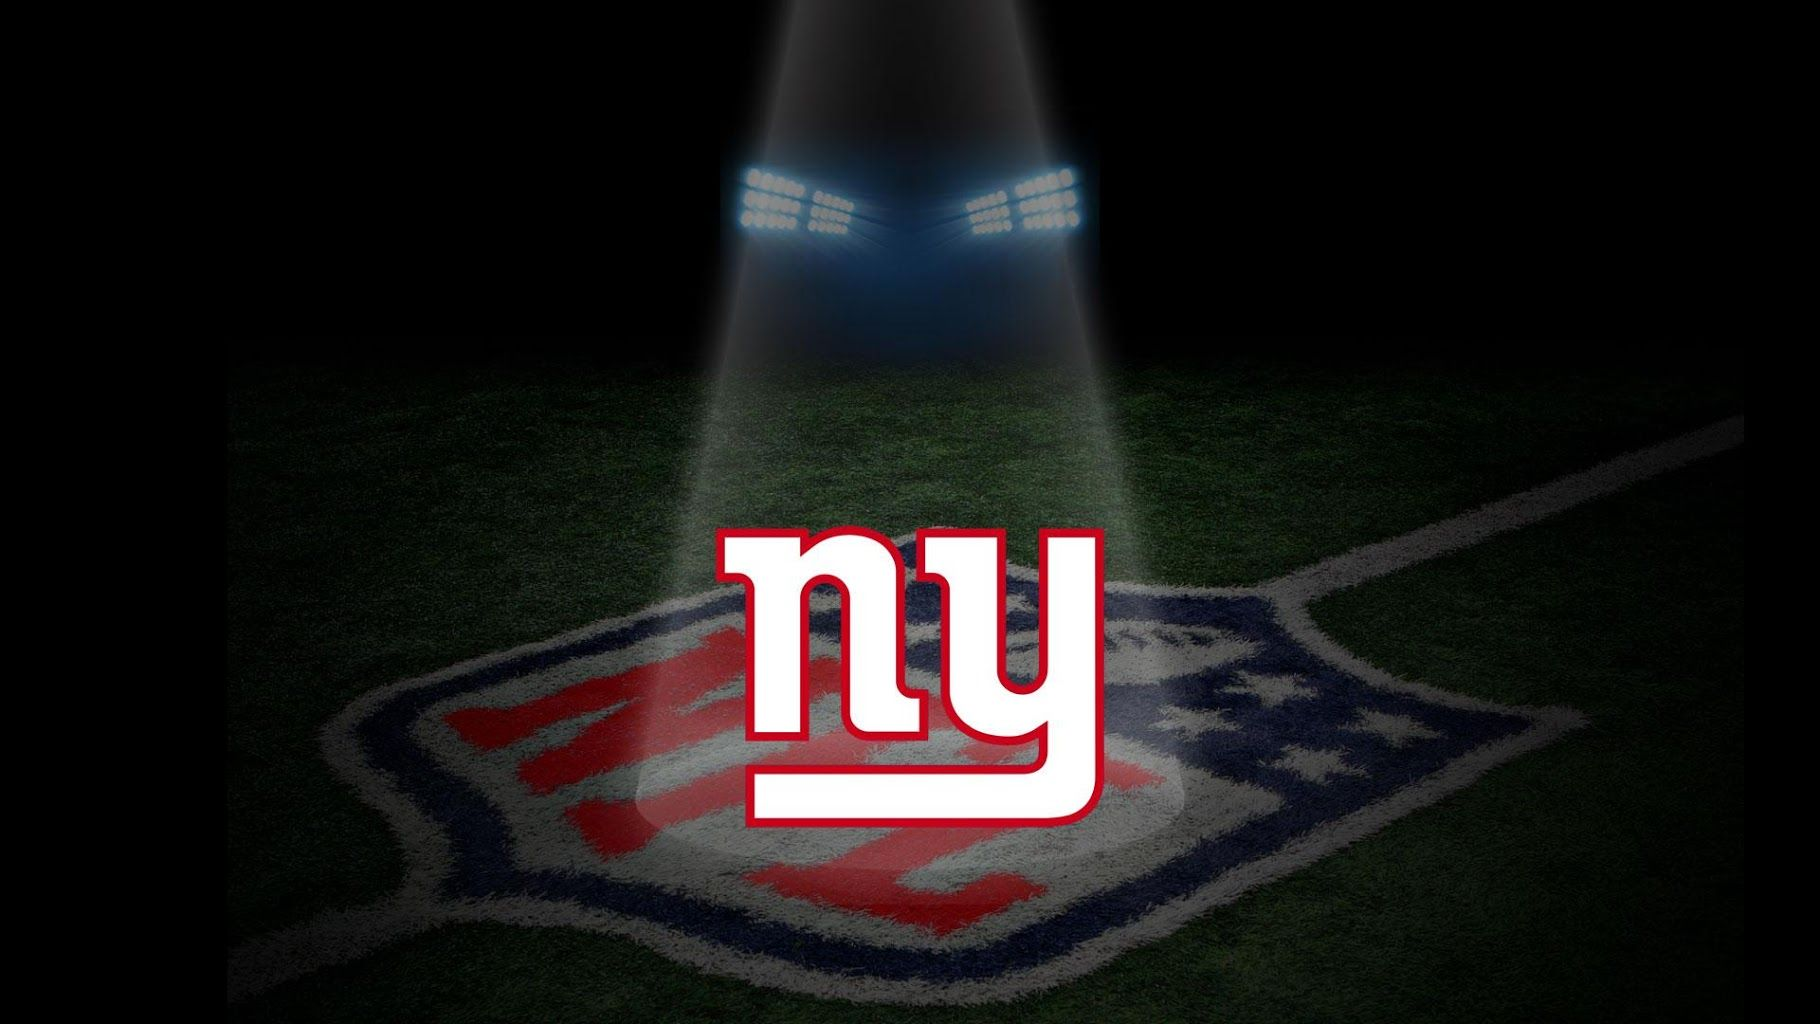 Giants Screensaver Posted By Samantha Anderson